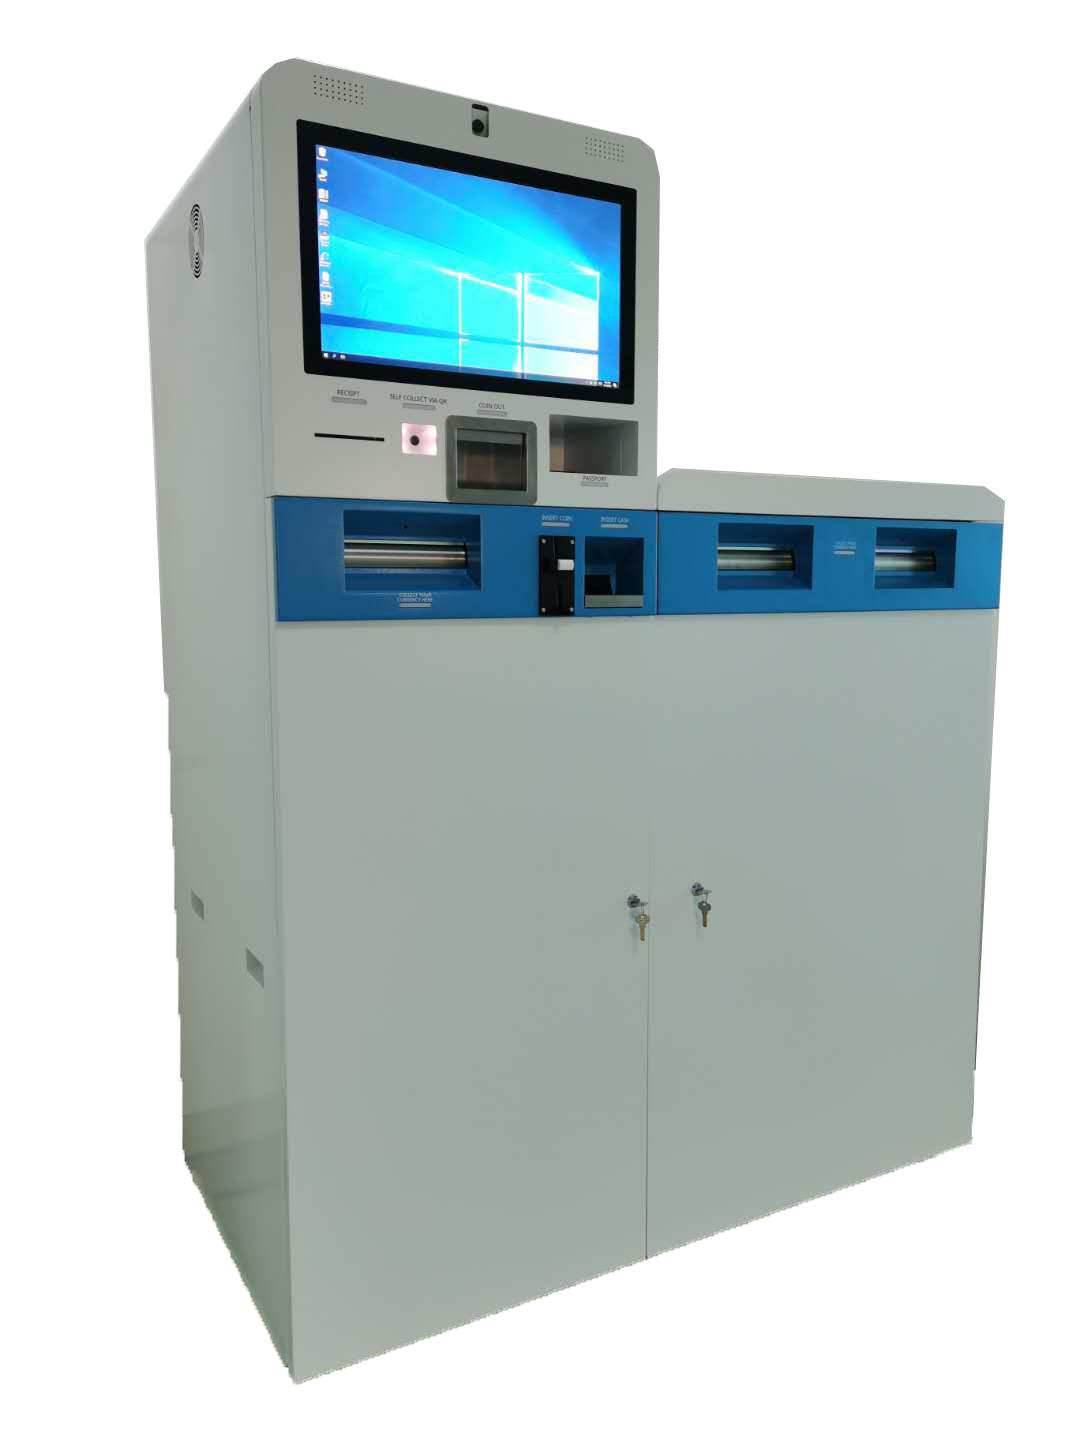 Self Service Financial Equipment Foreign Currency Exchange Machine With Touch Screen